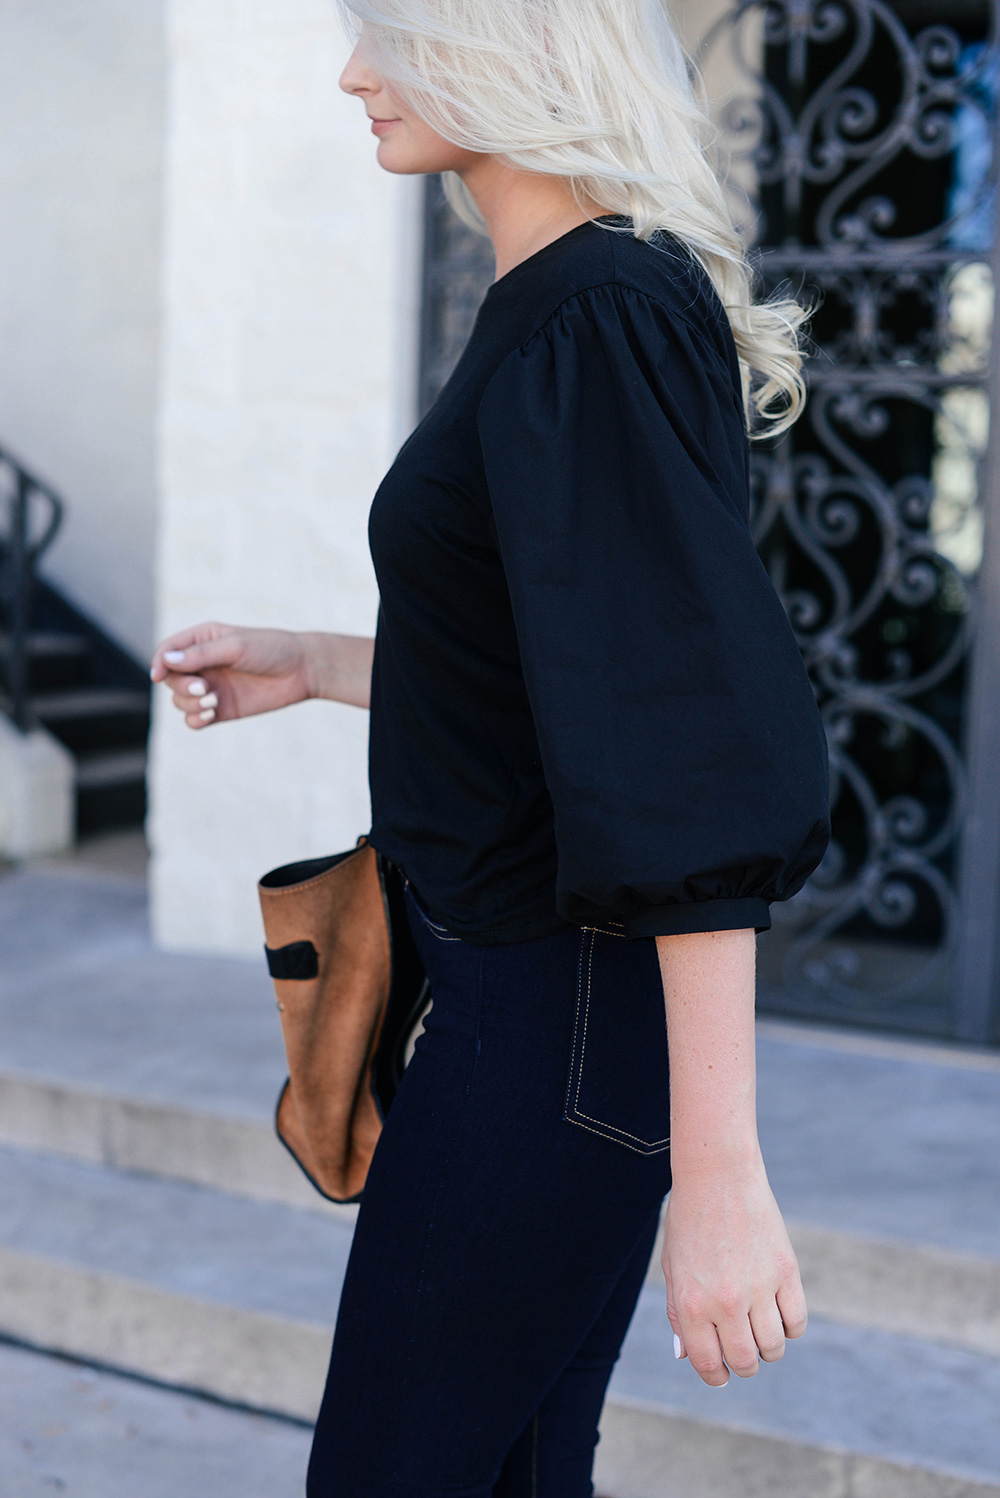 Balloon Sleeve Blouse | The Style Scribe